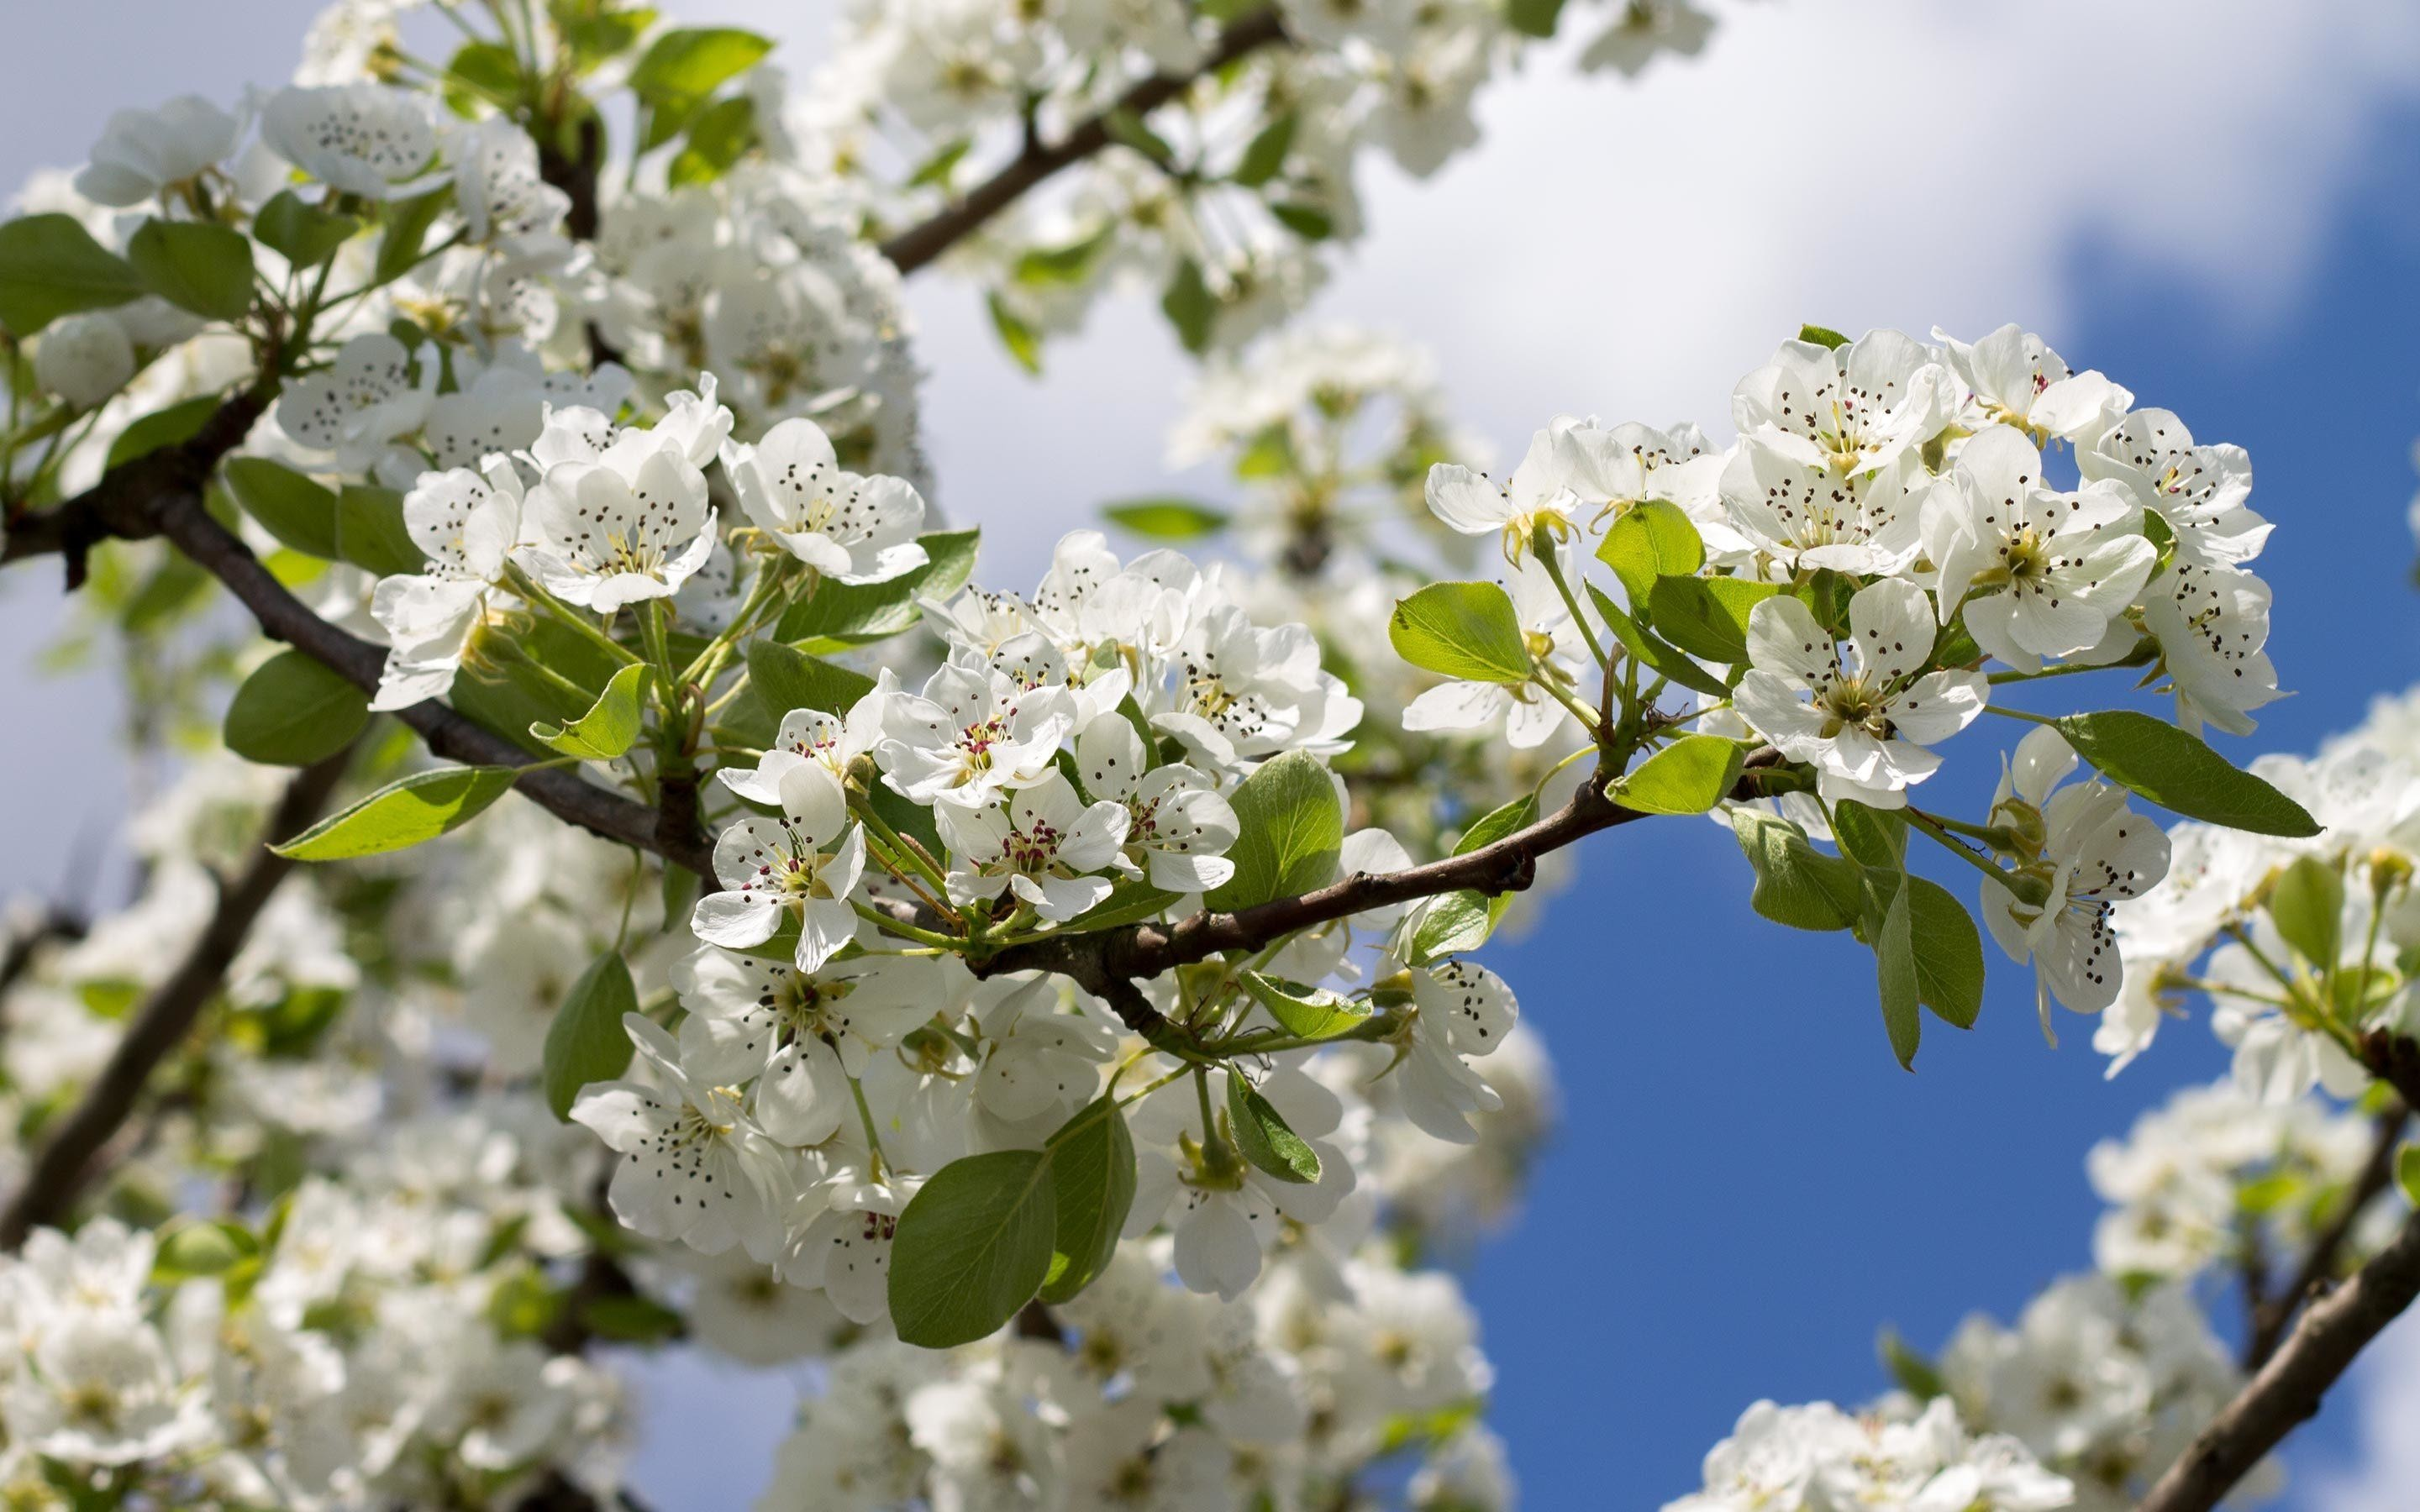 Res: 2880x1800, White pear blossoms along the branch